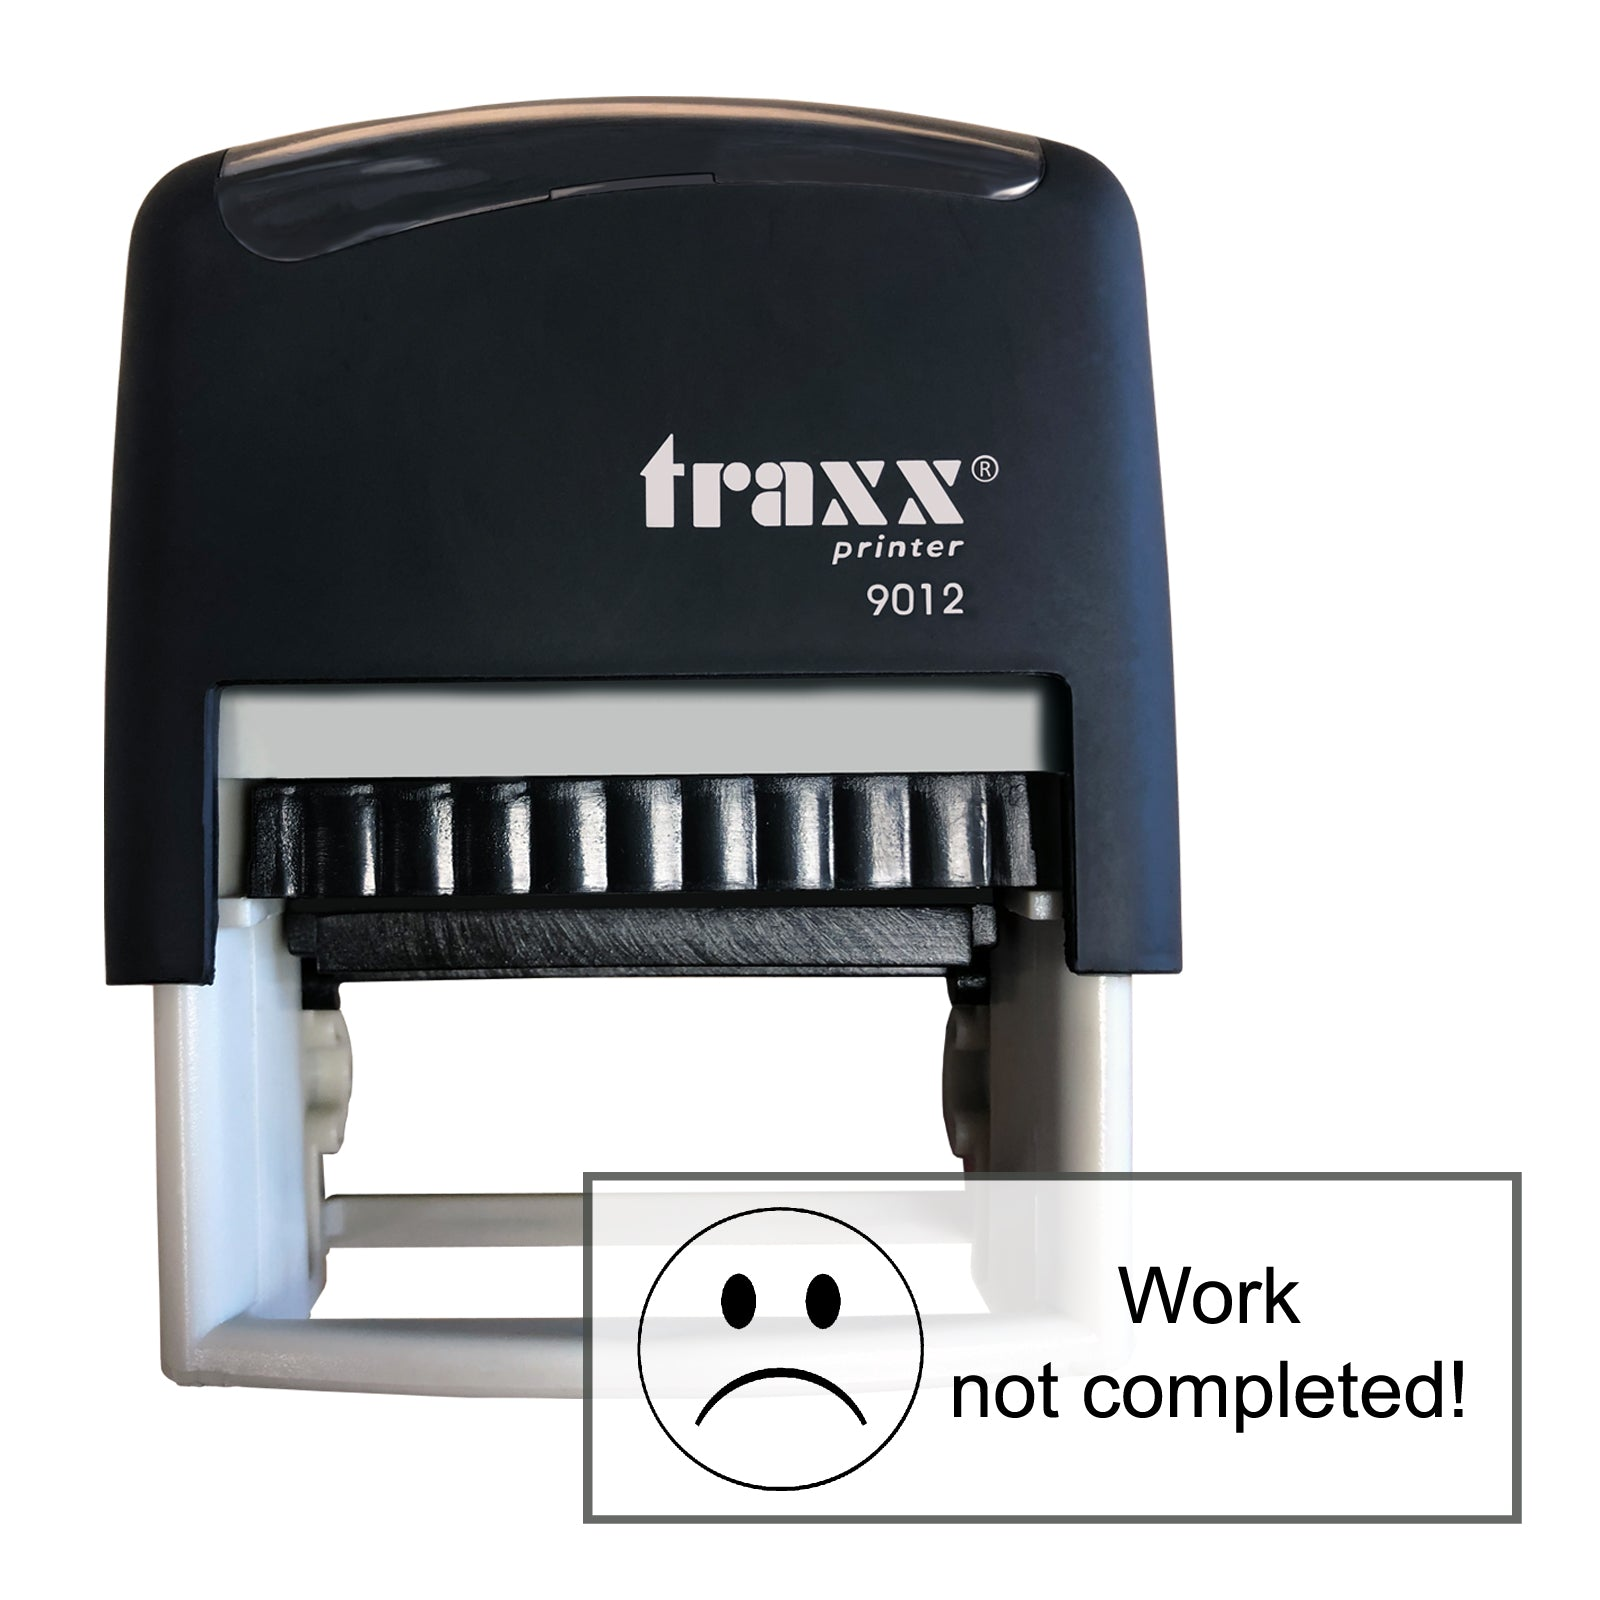 Traxx 9012 48 x 18mm Assessment Stamp - Work not completed